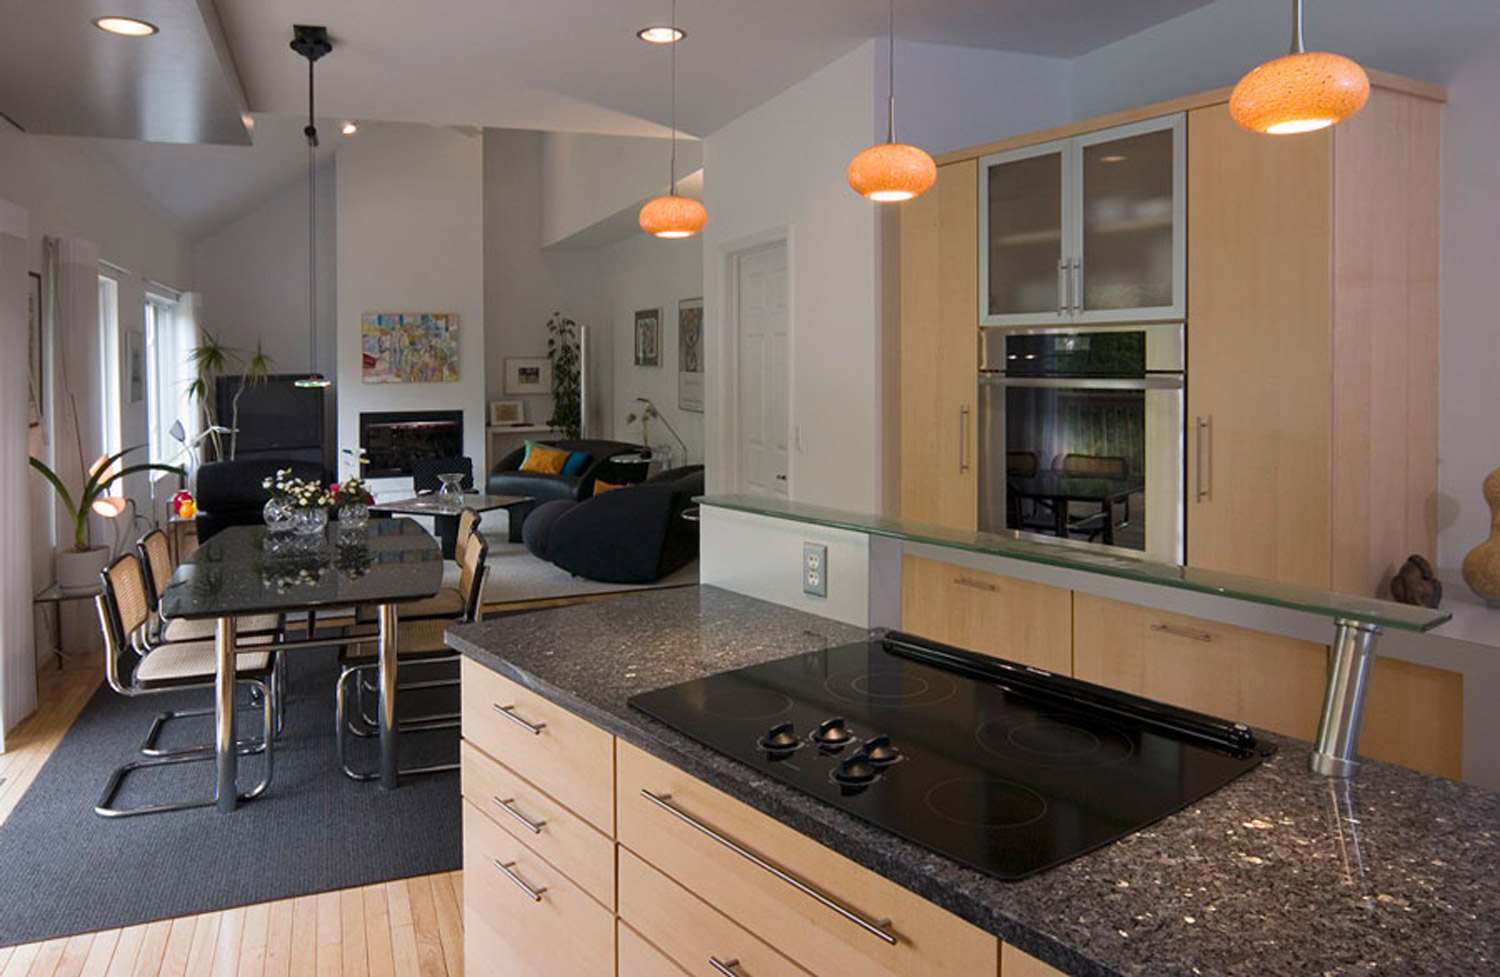 Countertop Materials for A Kitchen Remodel